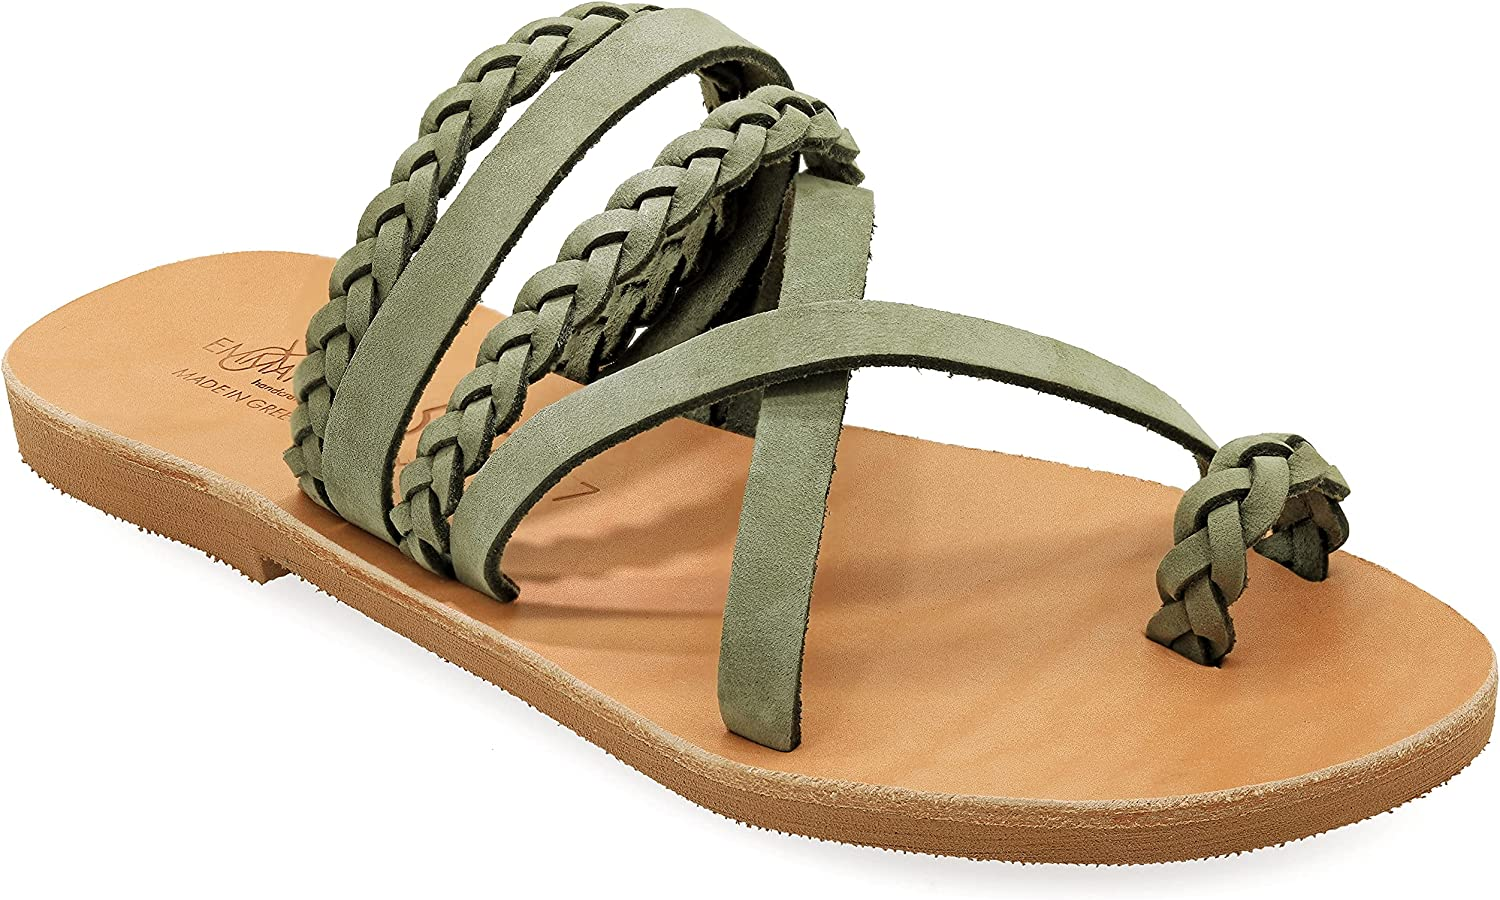 Emmanuela Greek Style Sandals with braided parts, Quality Handmade Leather Toe Ring Flat Sandals, Slide on Summer Shoes for Women, Boho Chic Slider Sandals